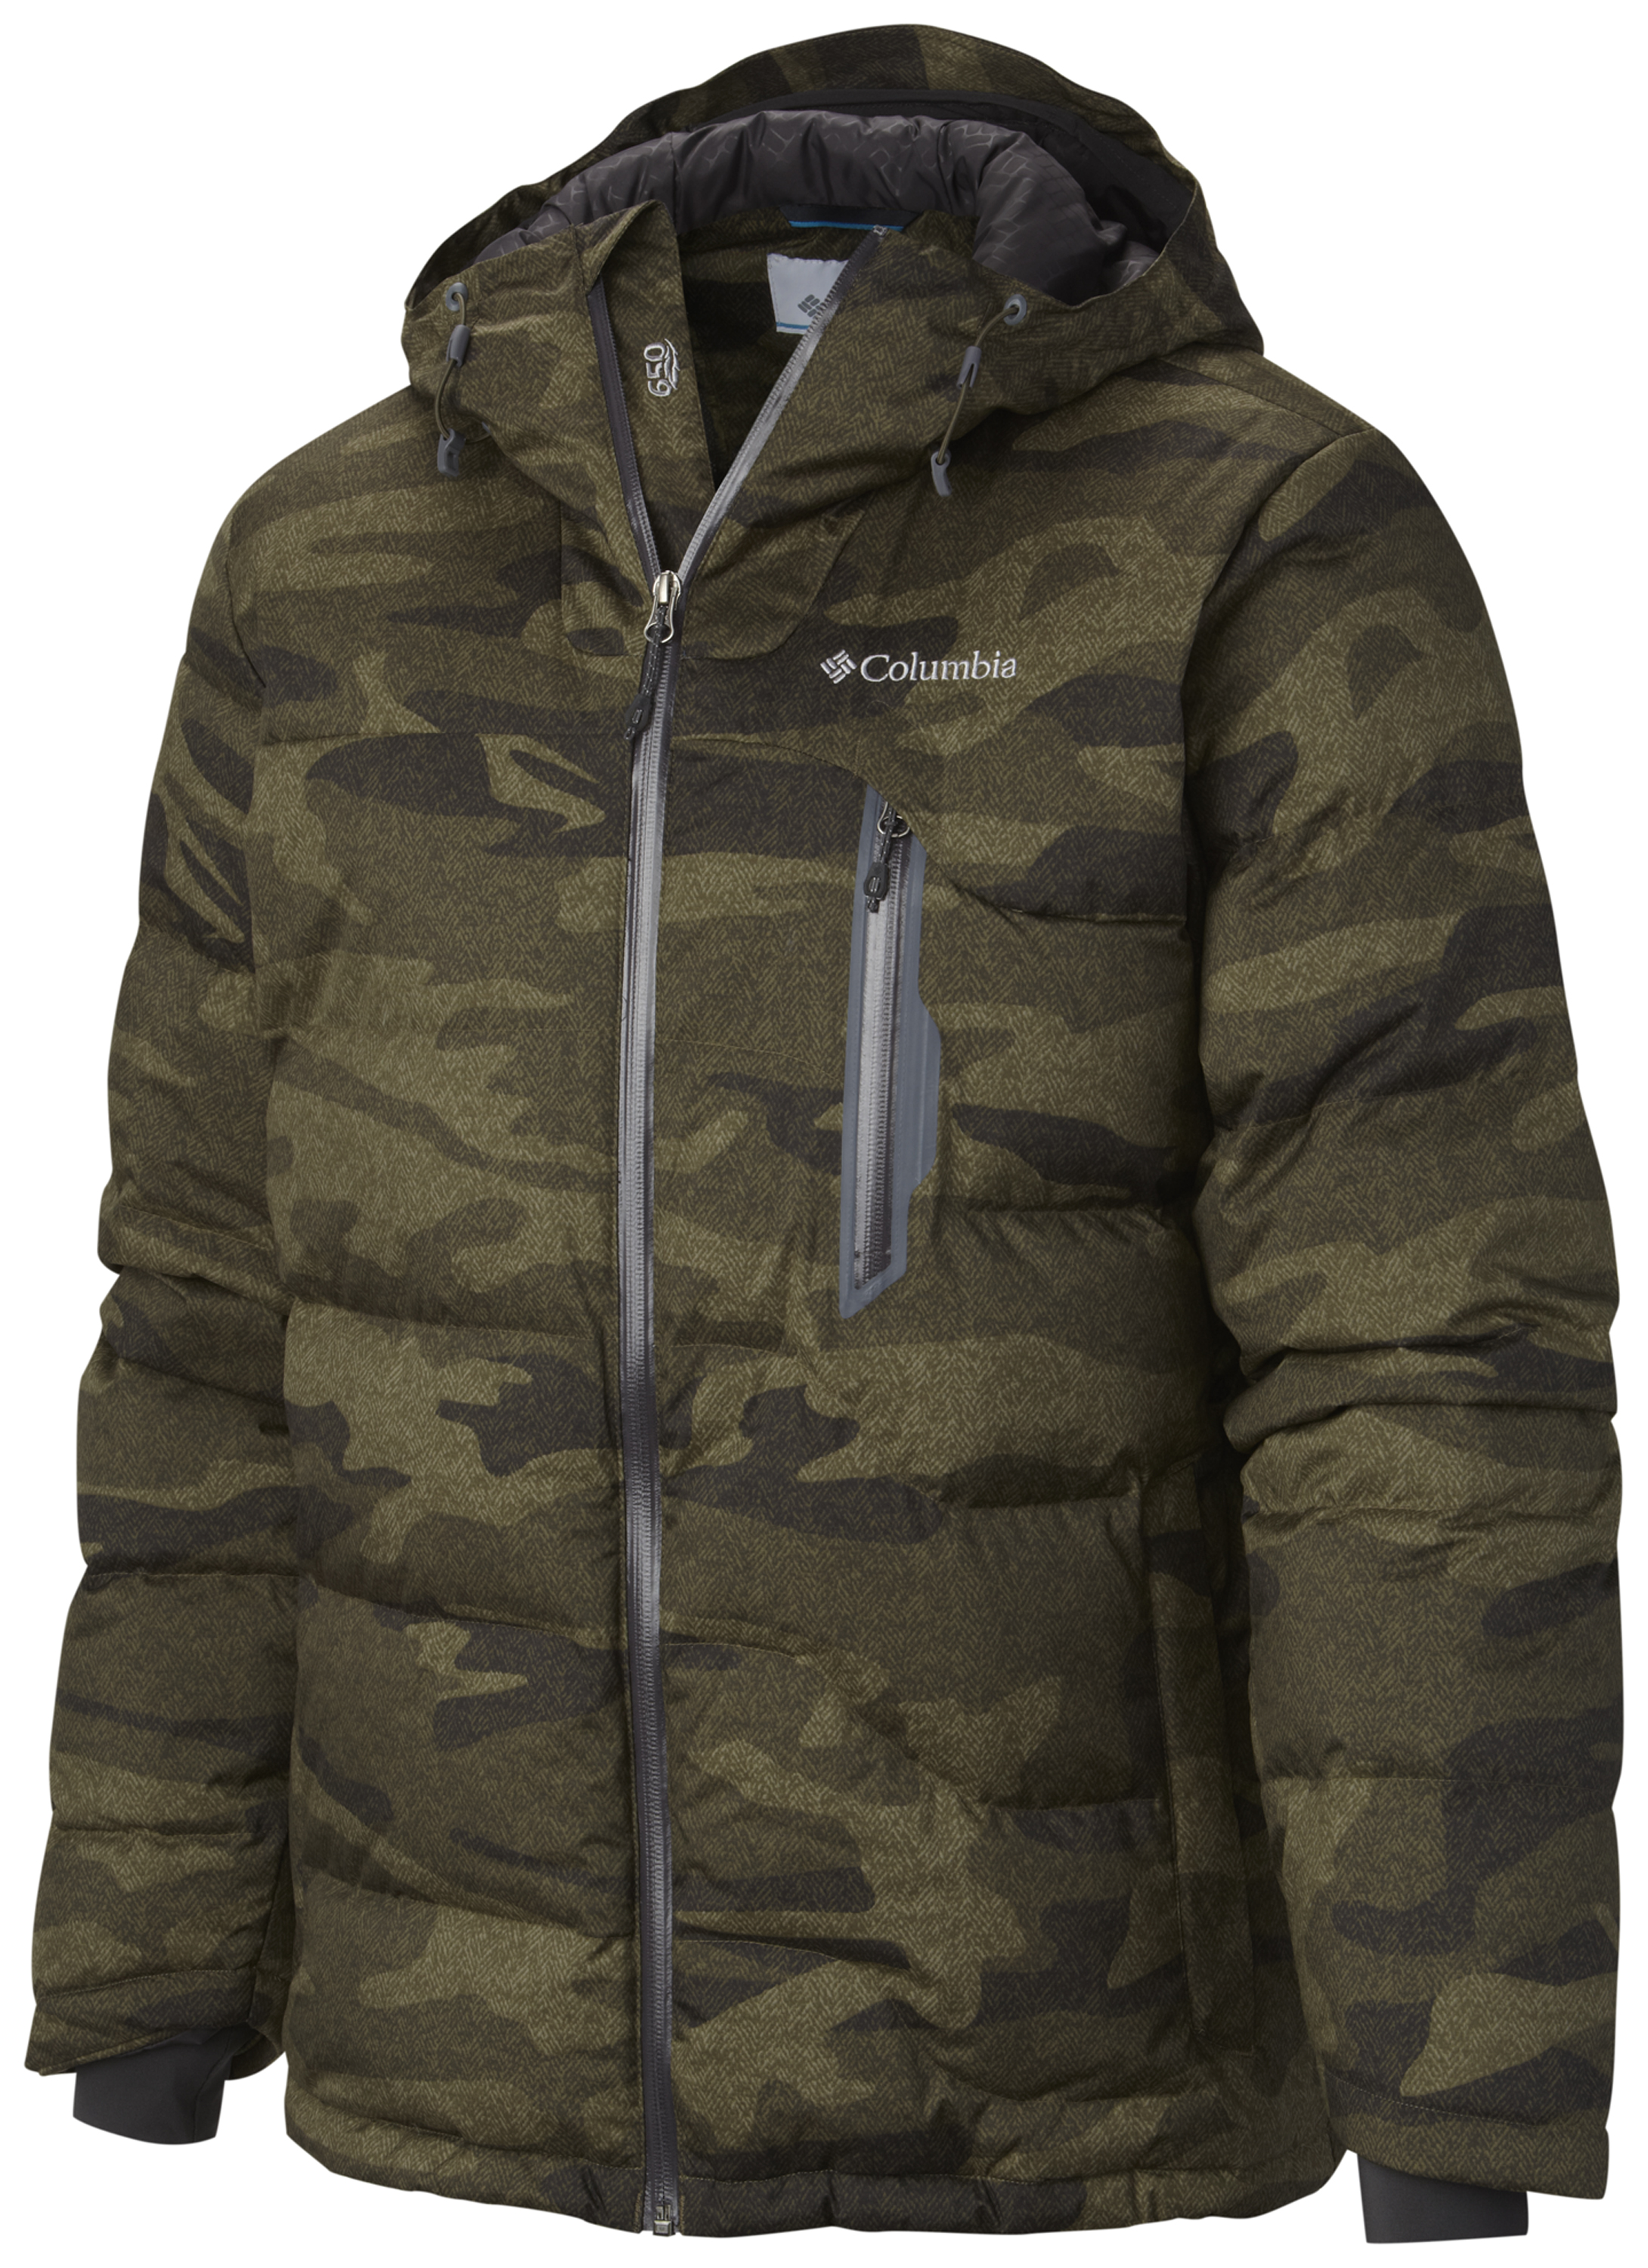 Columbia Powder Down™ Jacket, $175